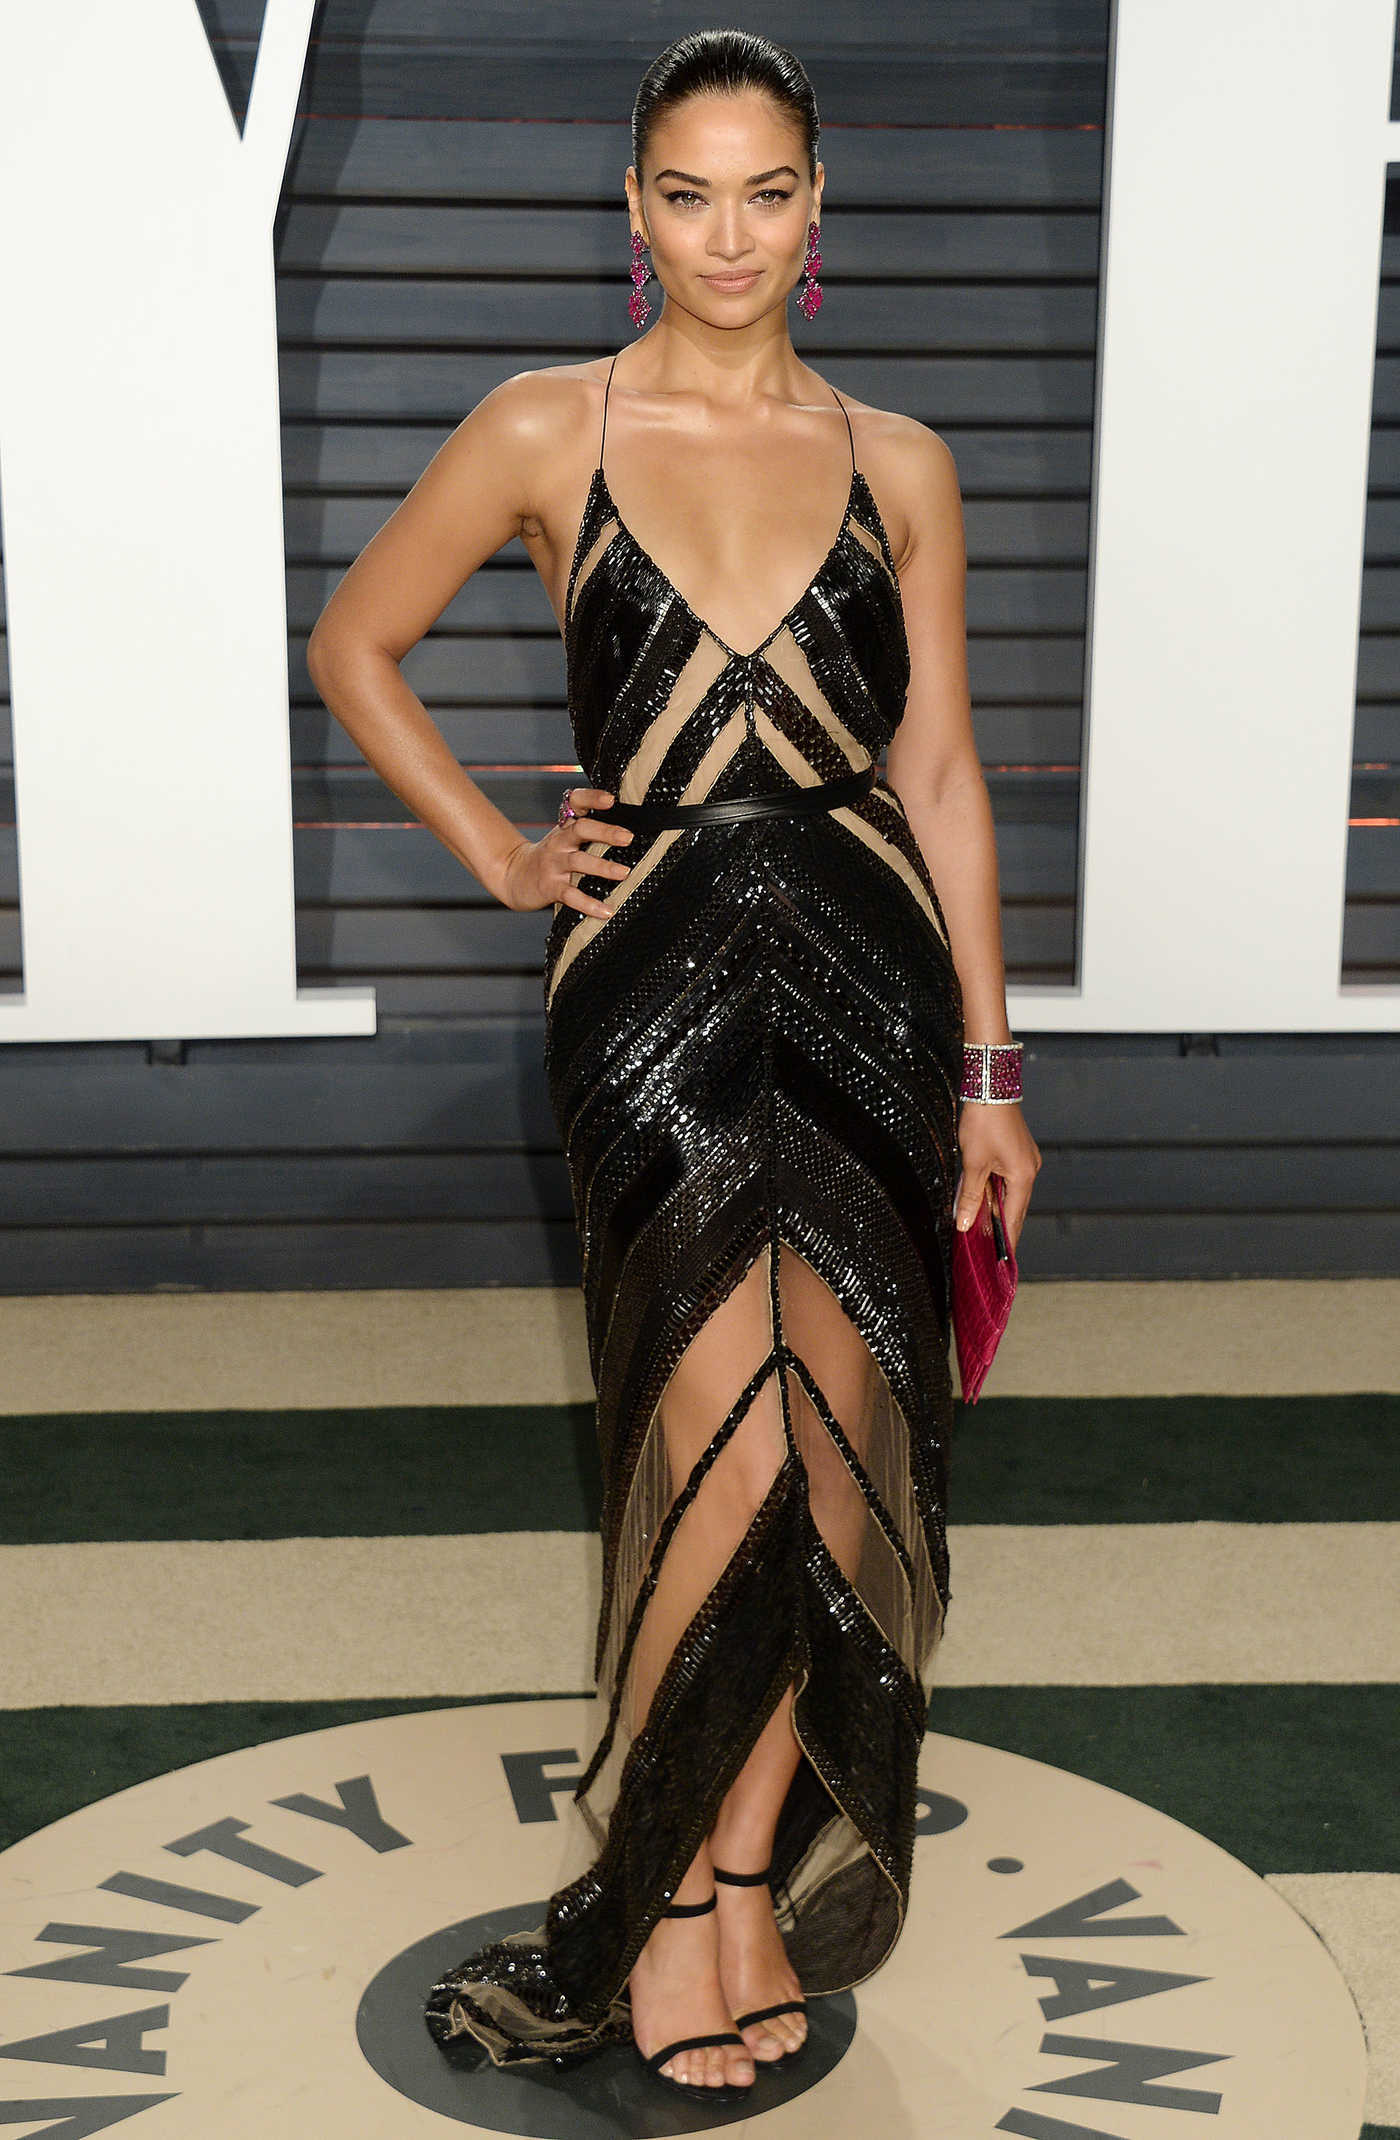 Shanina Shaik at the 2017 Vanity Fair Oscar Party in Beverly Hills 02/26/2017